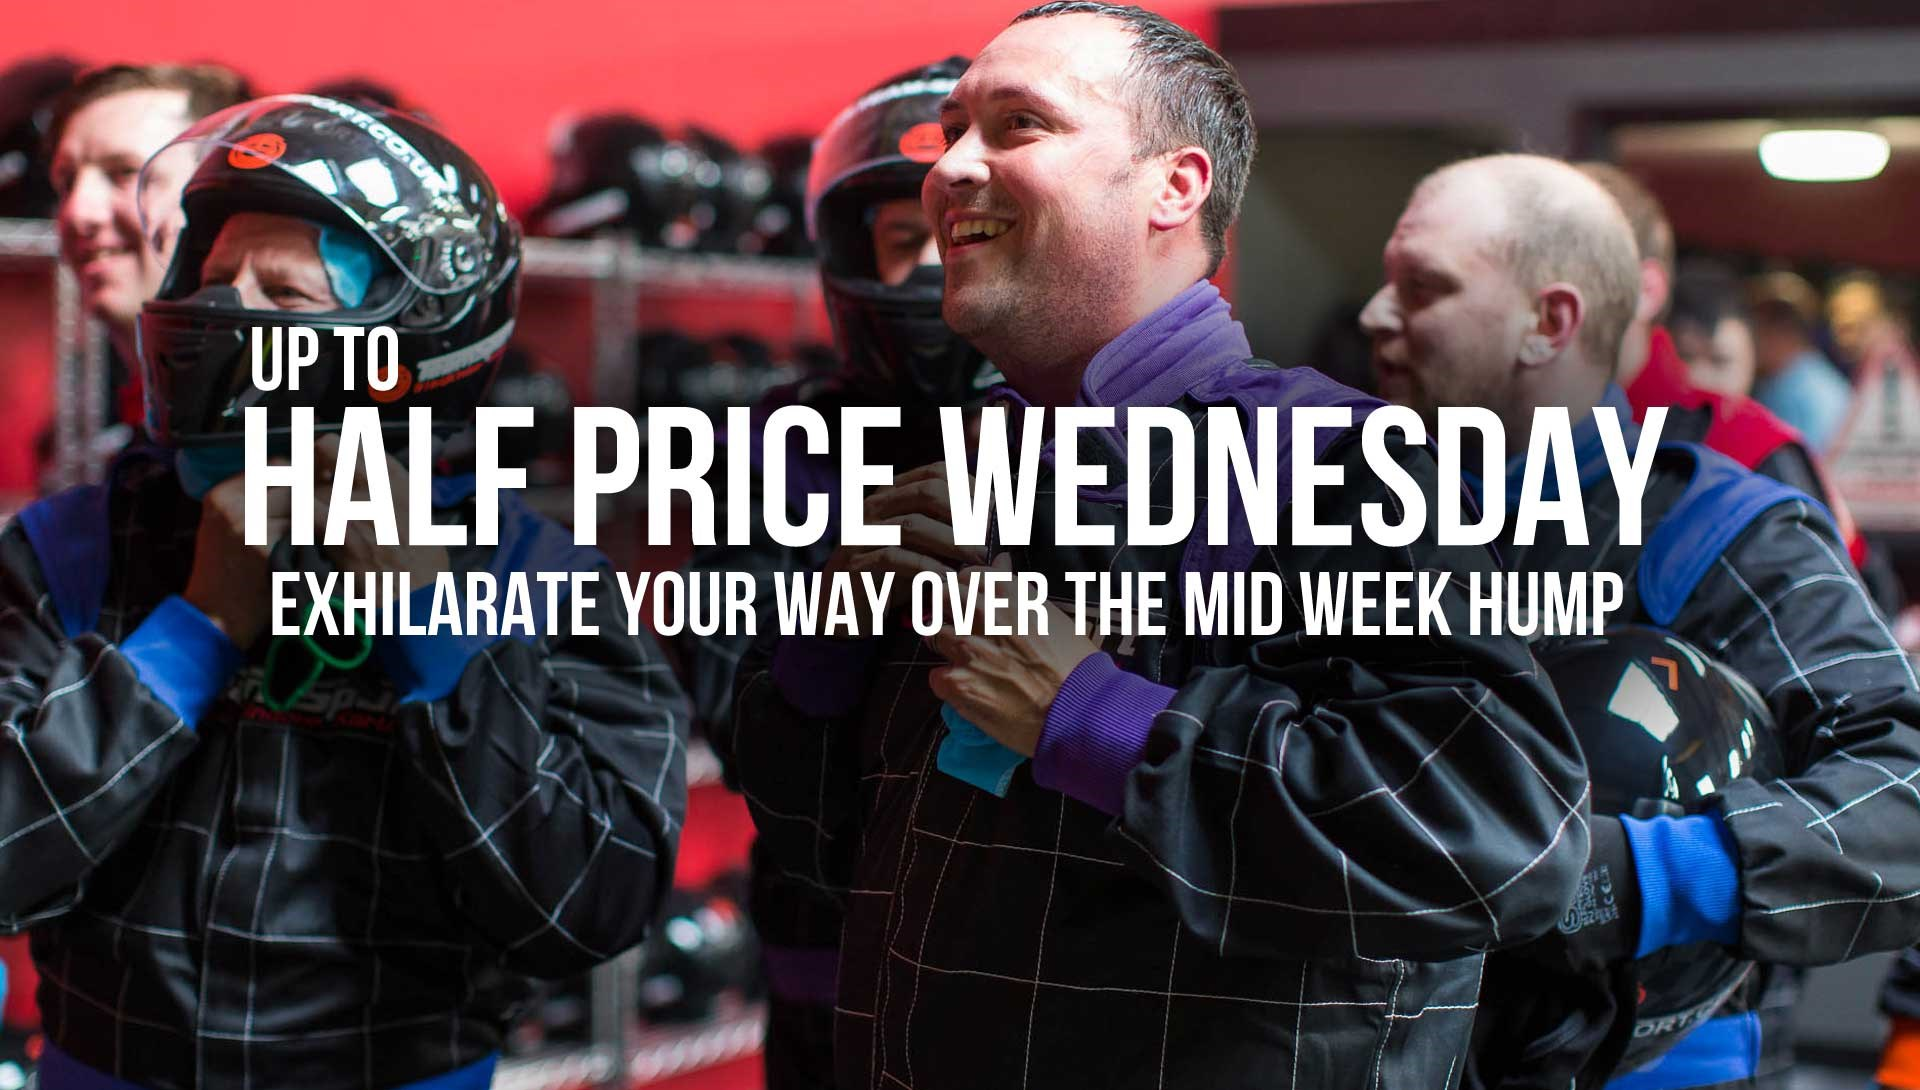 GO KARTING OFFERS - Up to Half Price Wednesday